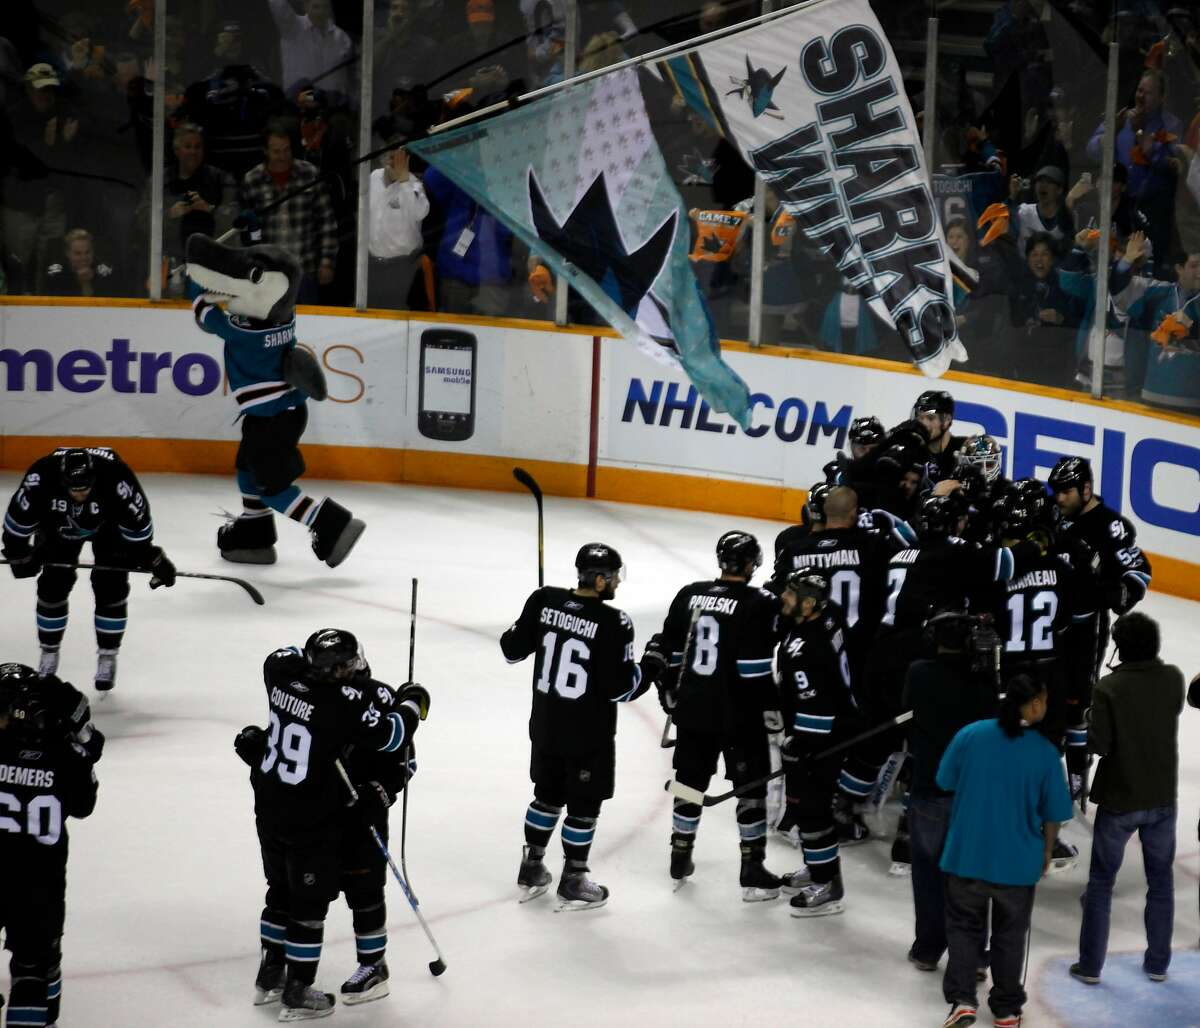 The San Jose Sharks celebrate their win over the Detroit Red Wings in the third period of Game 7 of a second-round NHL Stanley Cup playoff hockey game in San Jose, Calif., Thursday May 12, 2011. The Sharks won 3-2.